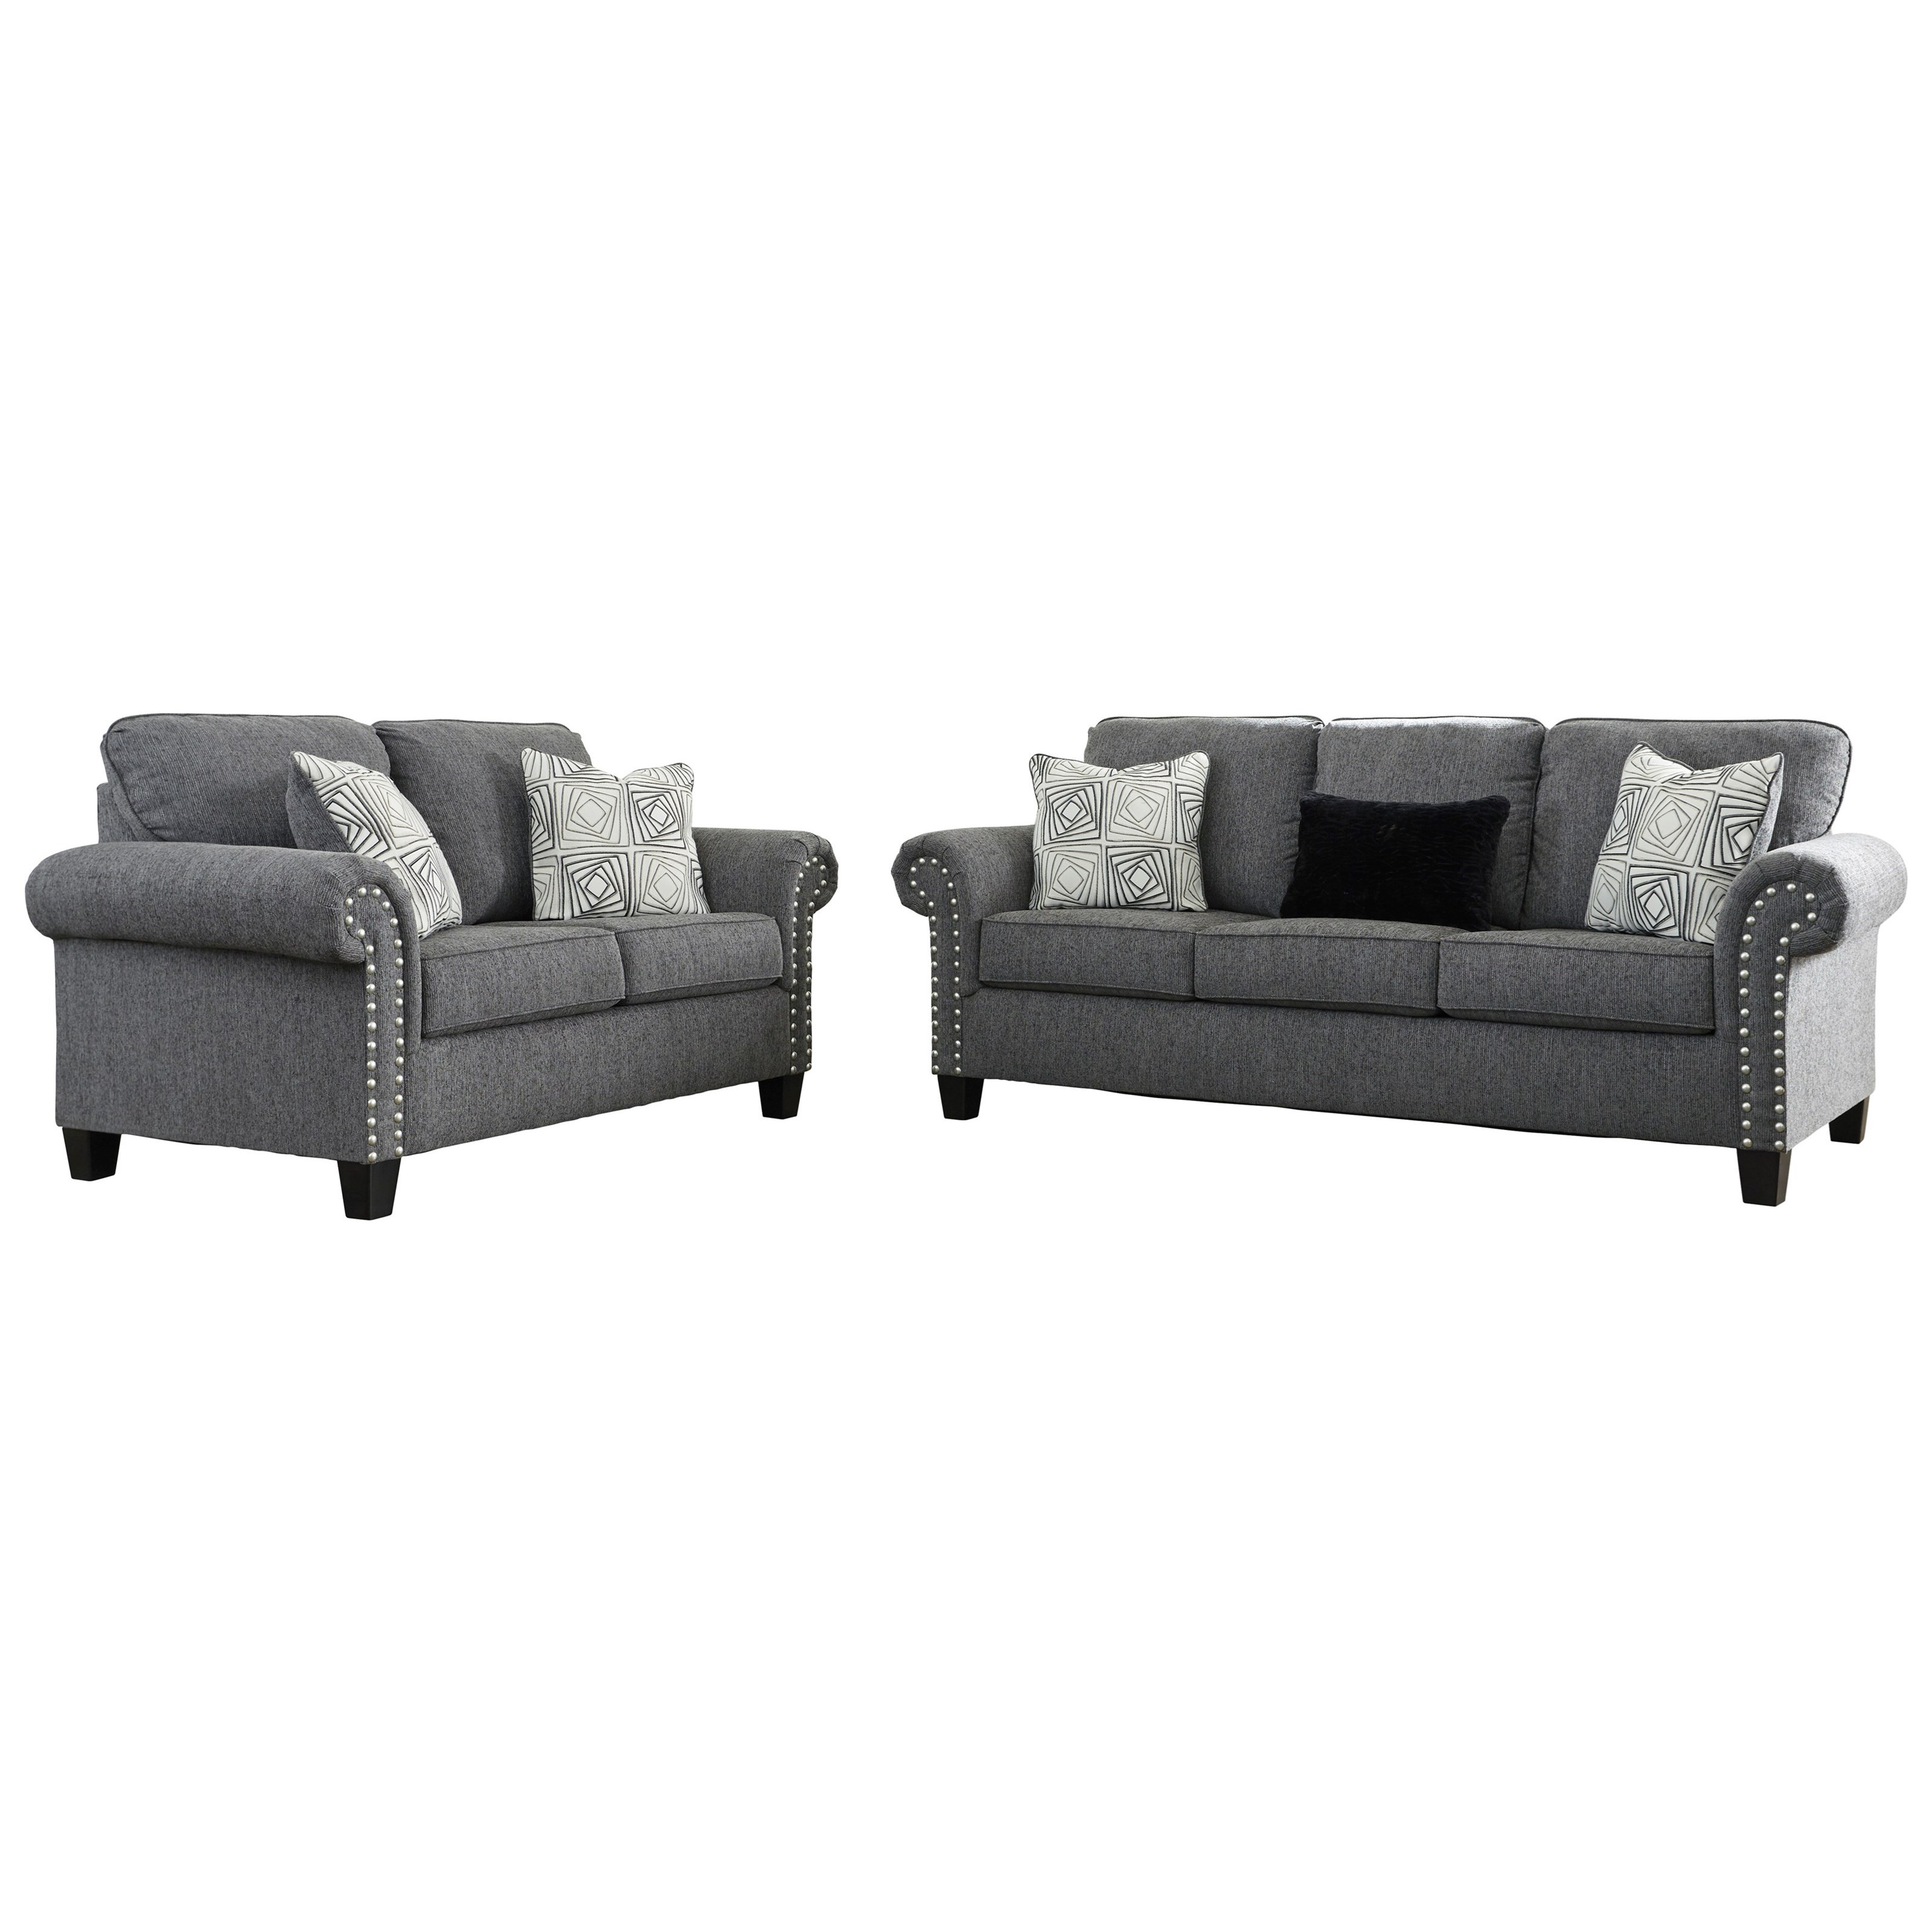 Agleno Living Room Group by Benchcraft at Fashion Furniture